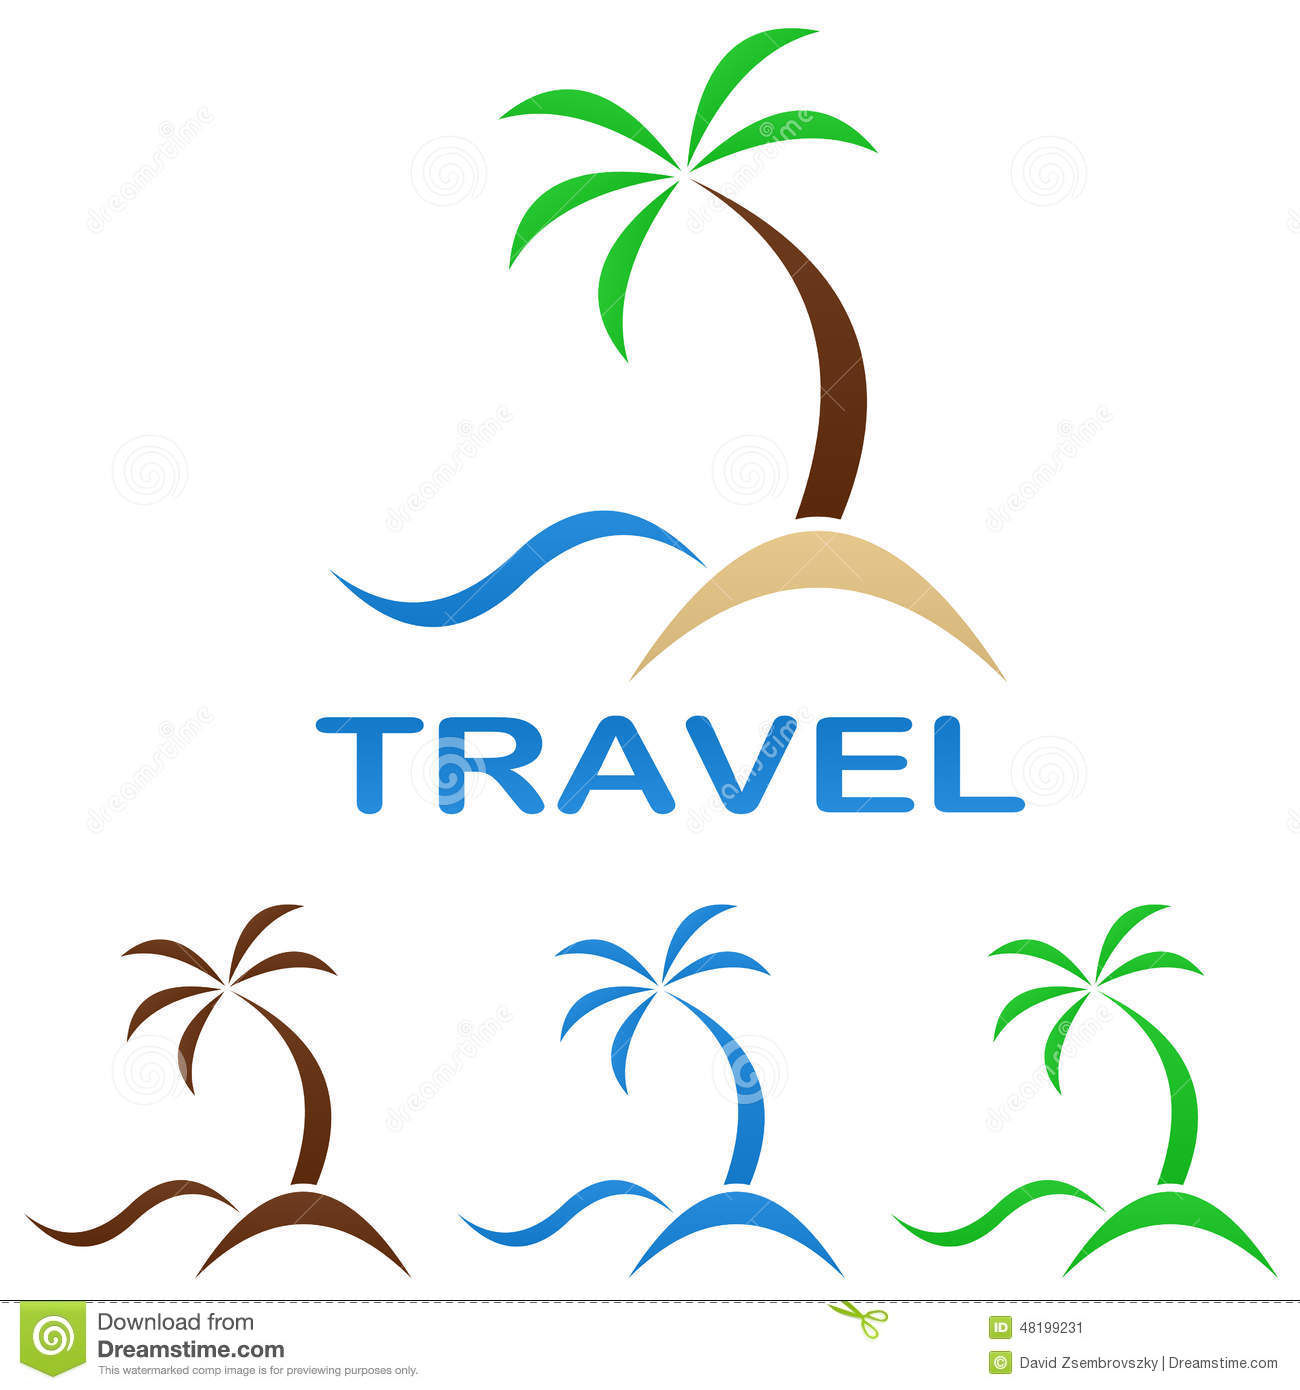 Travel Logo Design Template Stock Vector - Illustration of emblem ... for Logo Design Samples Free Download  113lpg